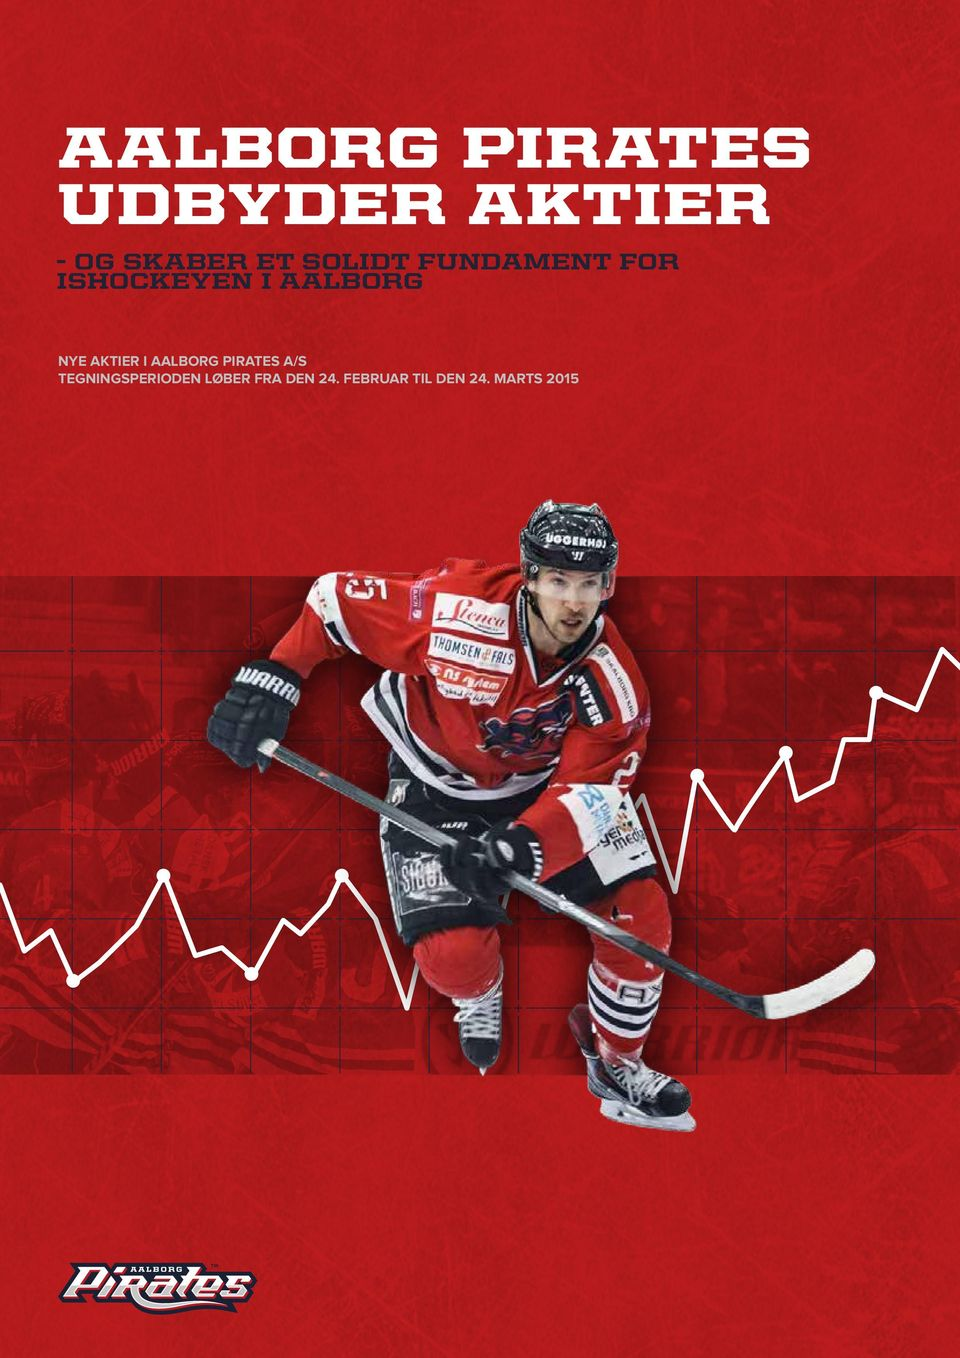 AKTIER I AALBORG PIRATES A/S TEGNINGSPERIODEN